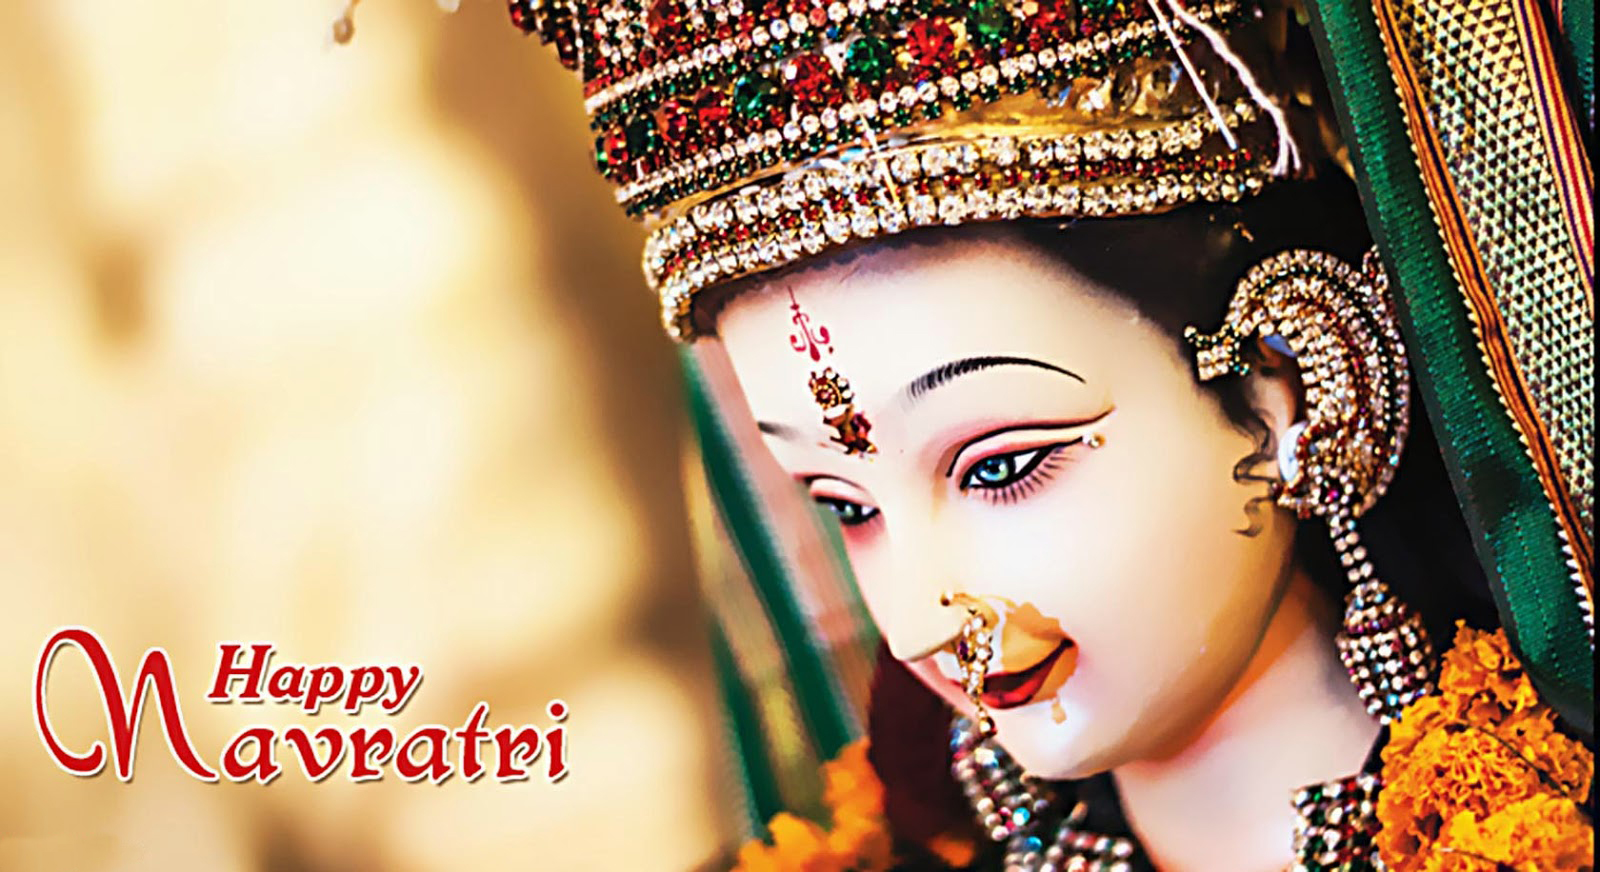 Wallpaper download durga maa - Download Navratri Durga Hd Image Wallpaper Navratri Maa